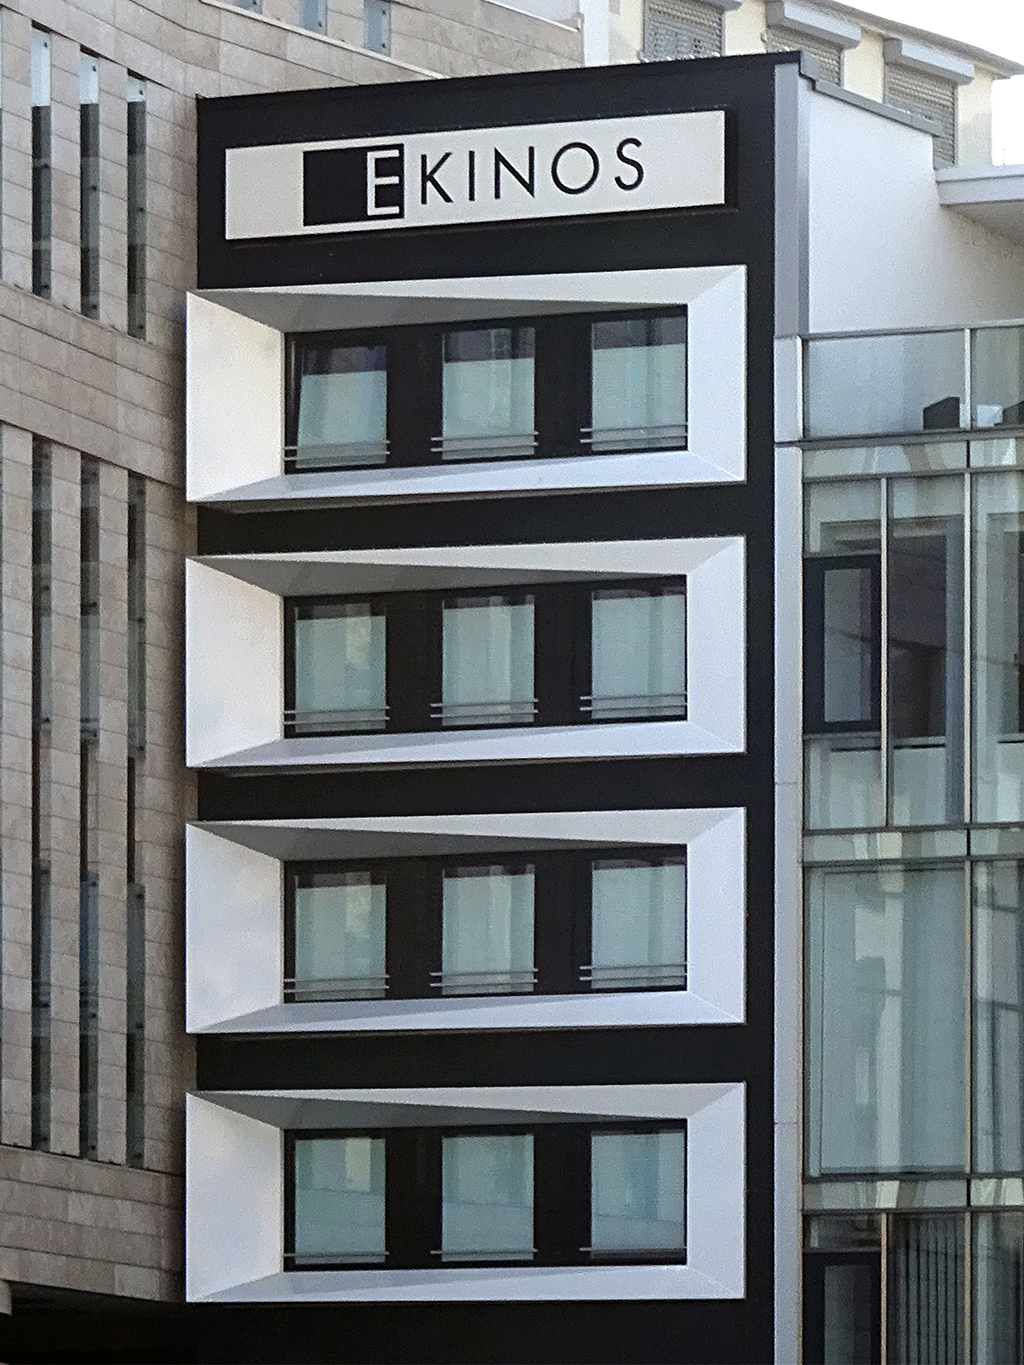 E-Kinos-Fassade in Frankfurt am Main